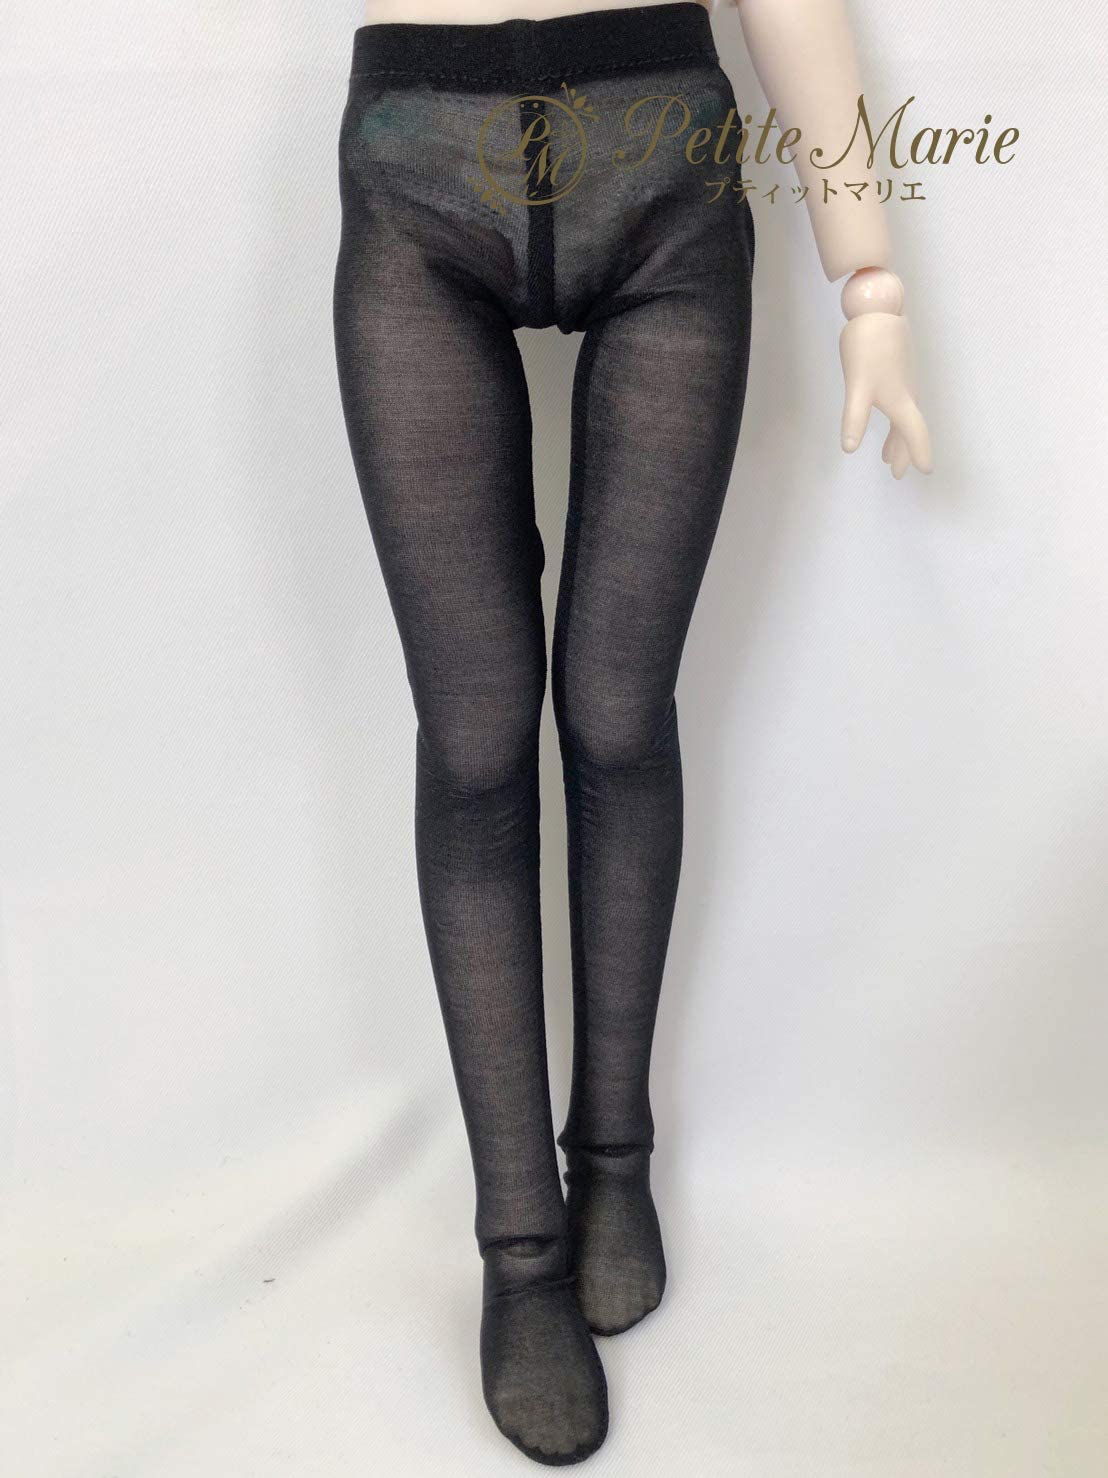 Clothes Only not Include Doll No.0049 Black Petite Marie Japan for 1//4 Doll 16 inch 40cm MDD MSD BJD Tights with a Sense of Sheerness and Soft Touch Mini Dollfie Dream